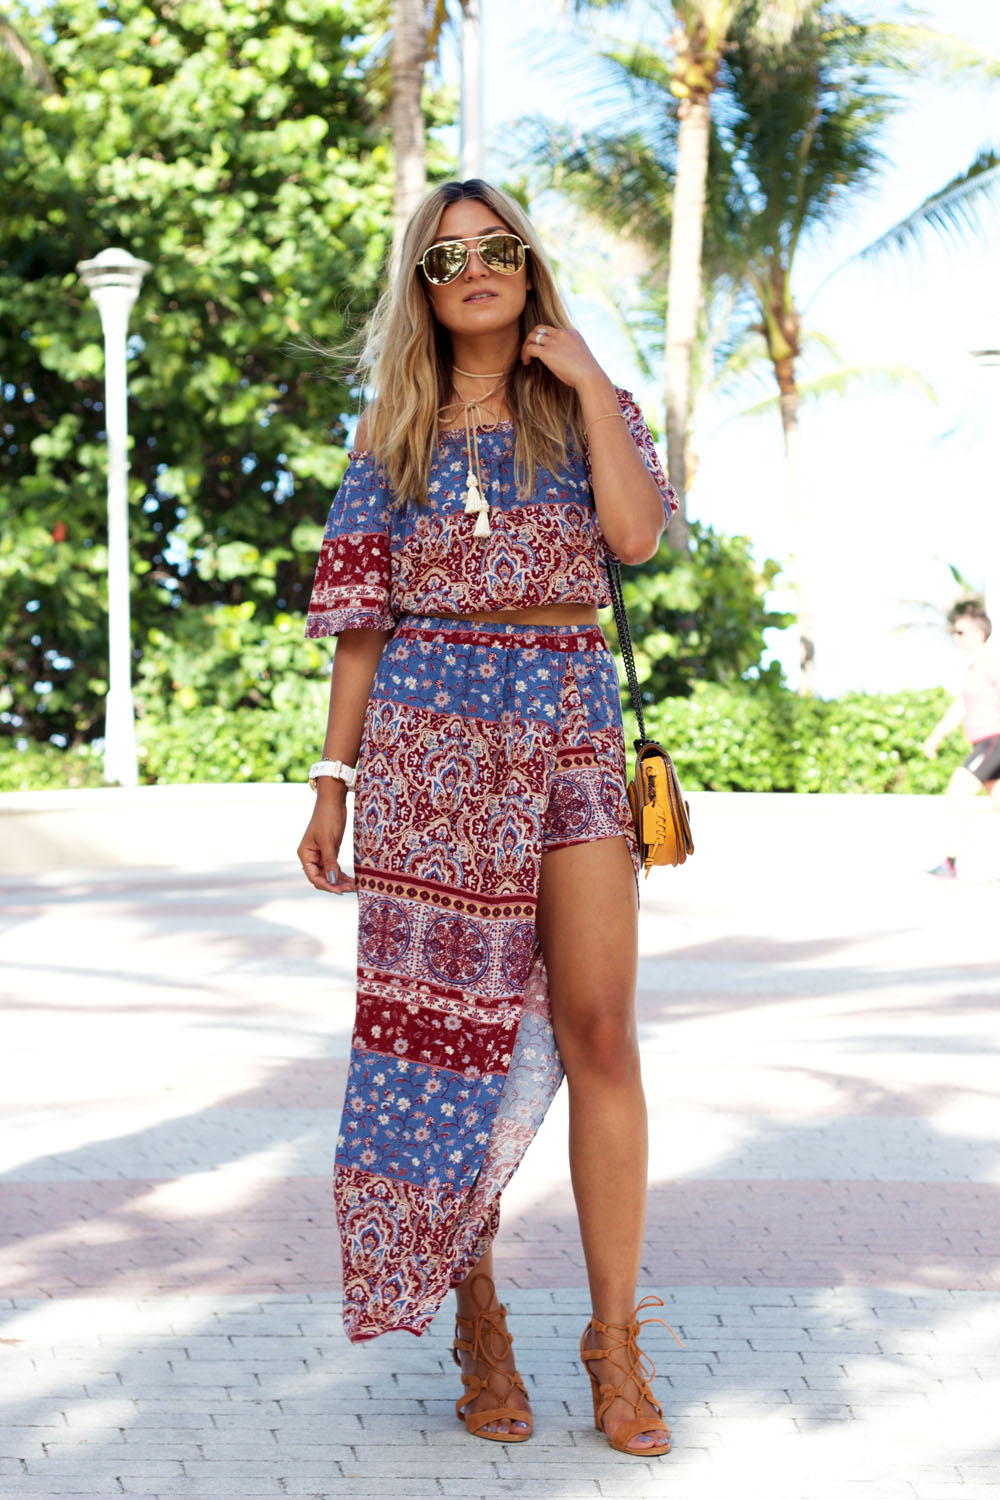 kyboe, miami swim week, miami, travel, la blogger, melrodstyle, trip, vacation, beach, south beach, florida, miami beach, show, runway show, ootd, outfit, inso, hispanic blogger, latina blogger, mexican blogger, bloggers,